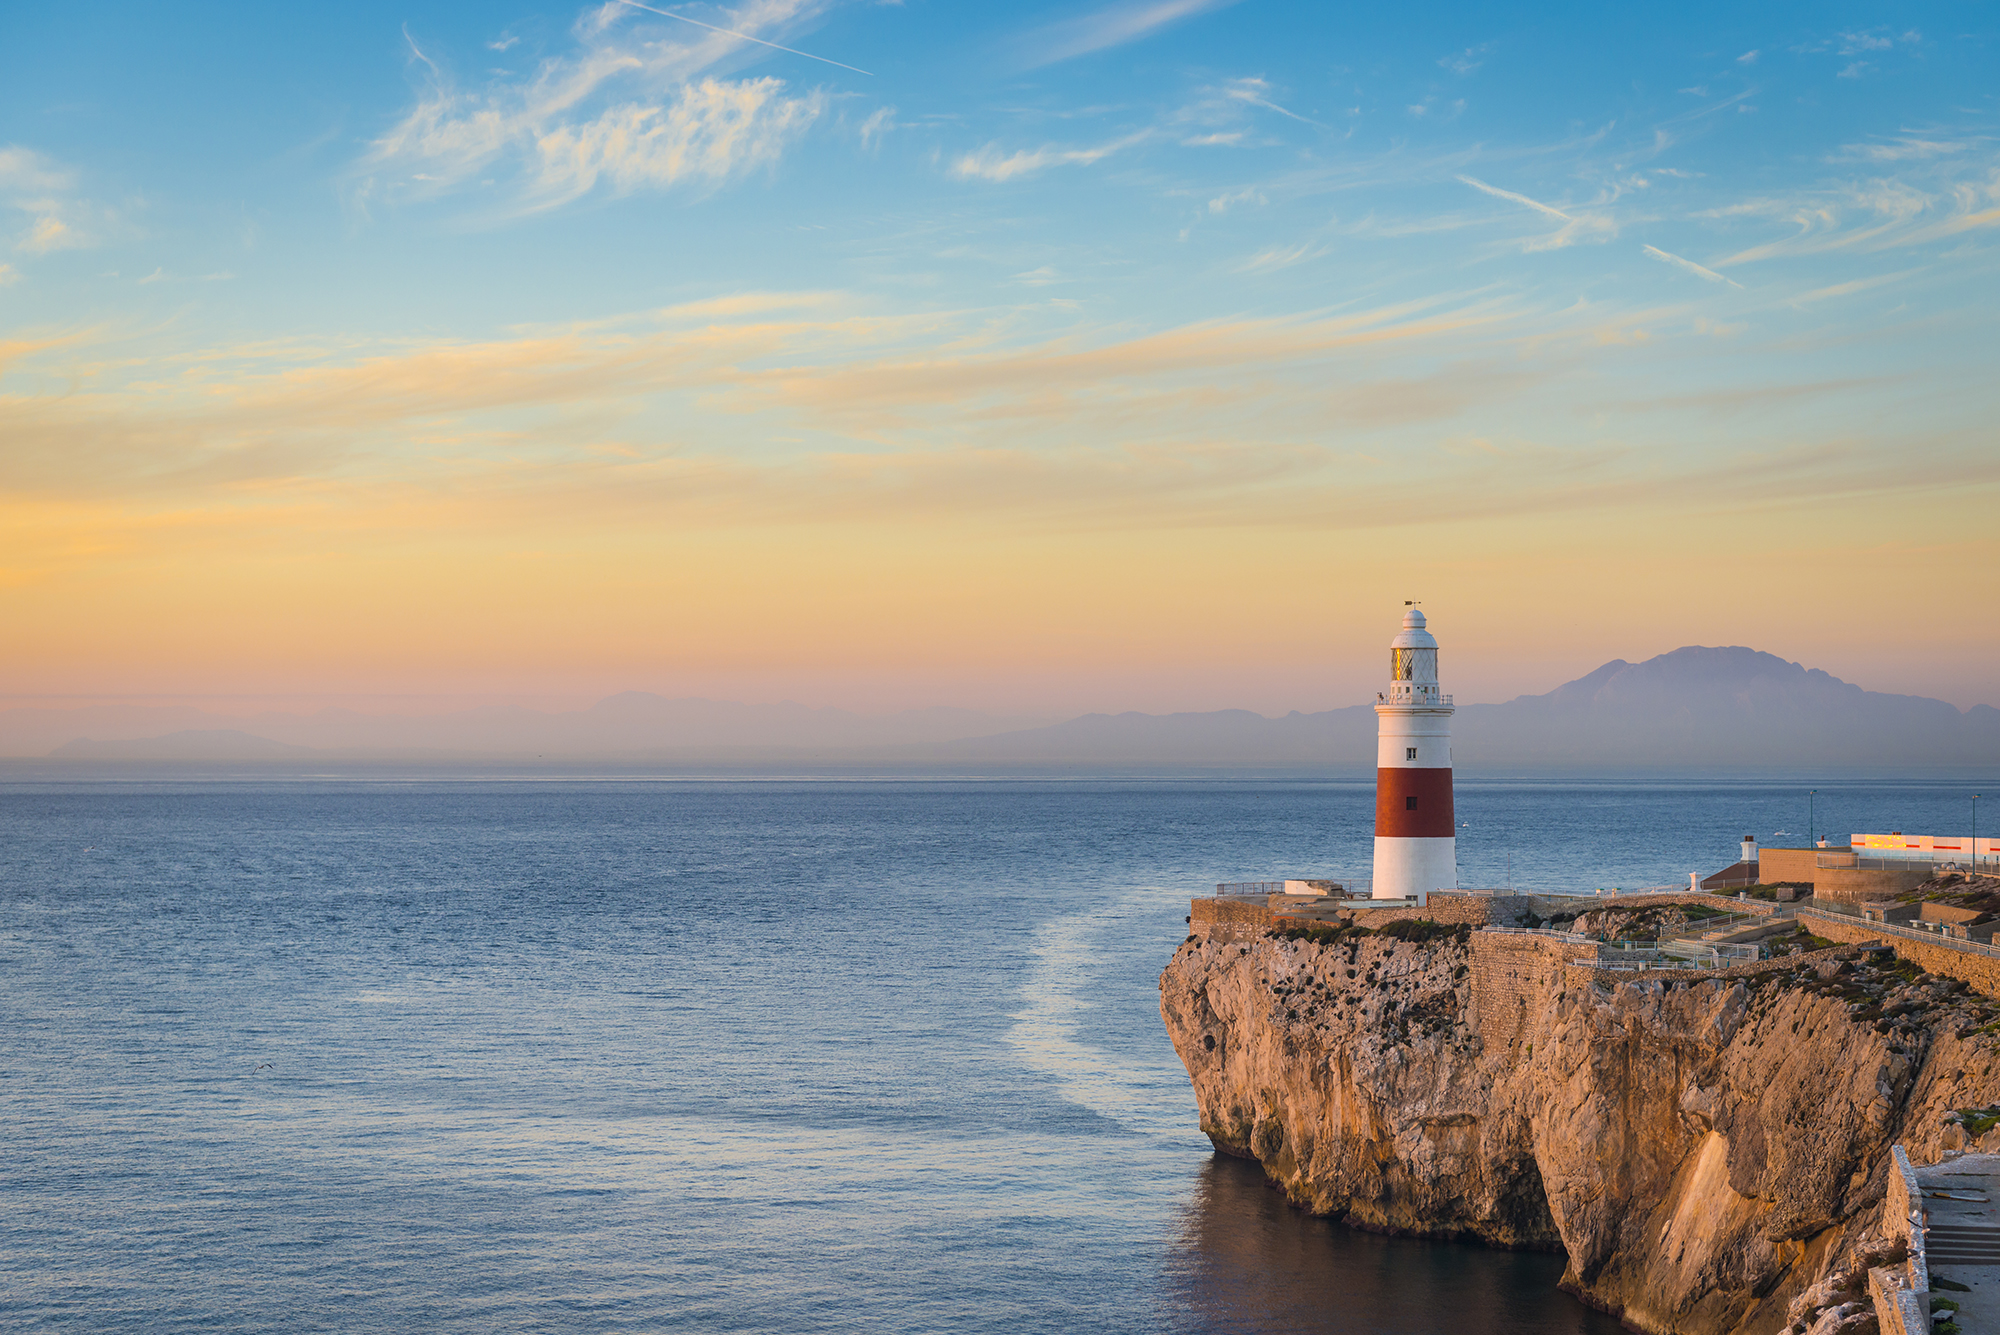 The Gibraltar Trinity Lighthouse (Africa in the distance).